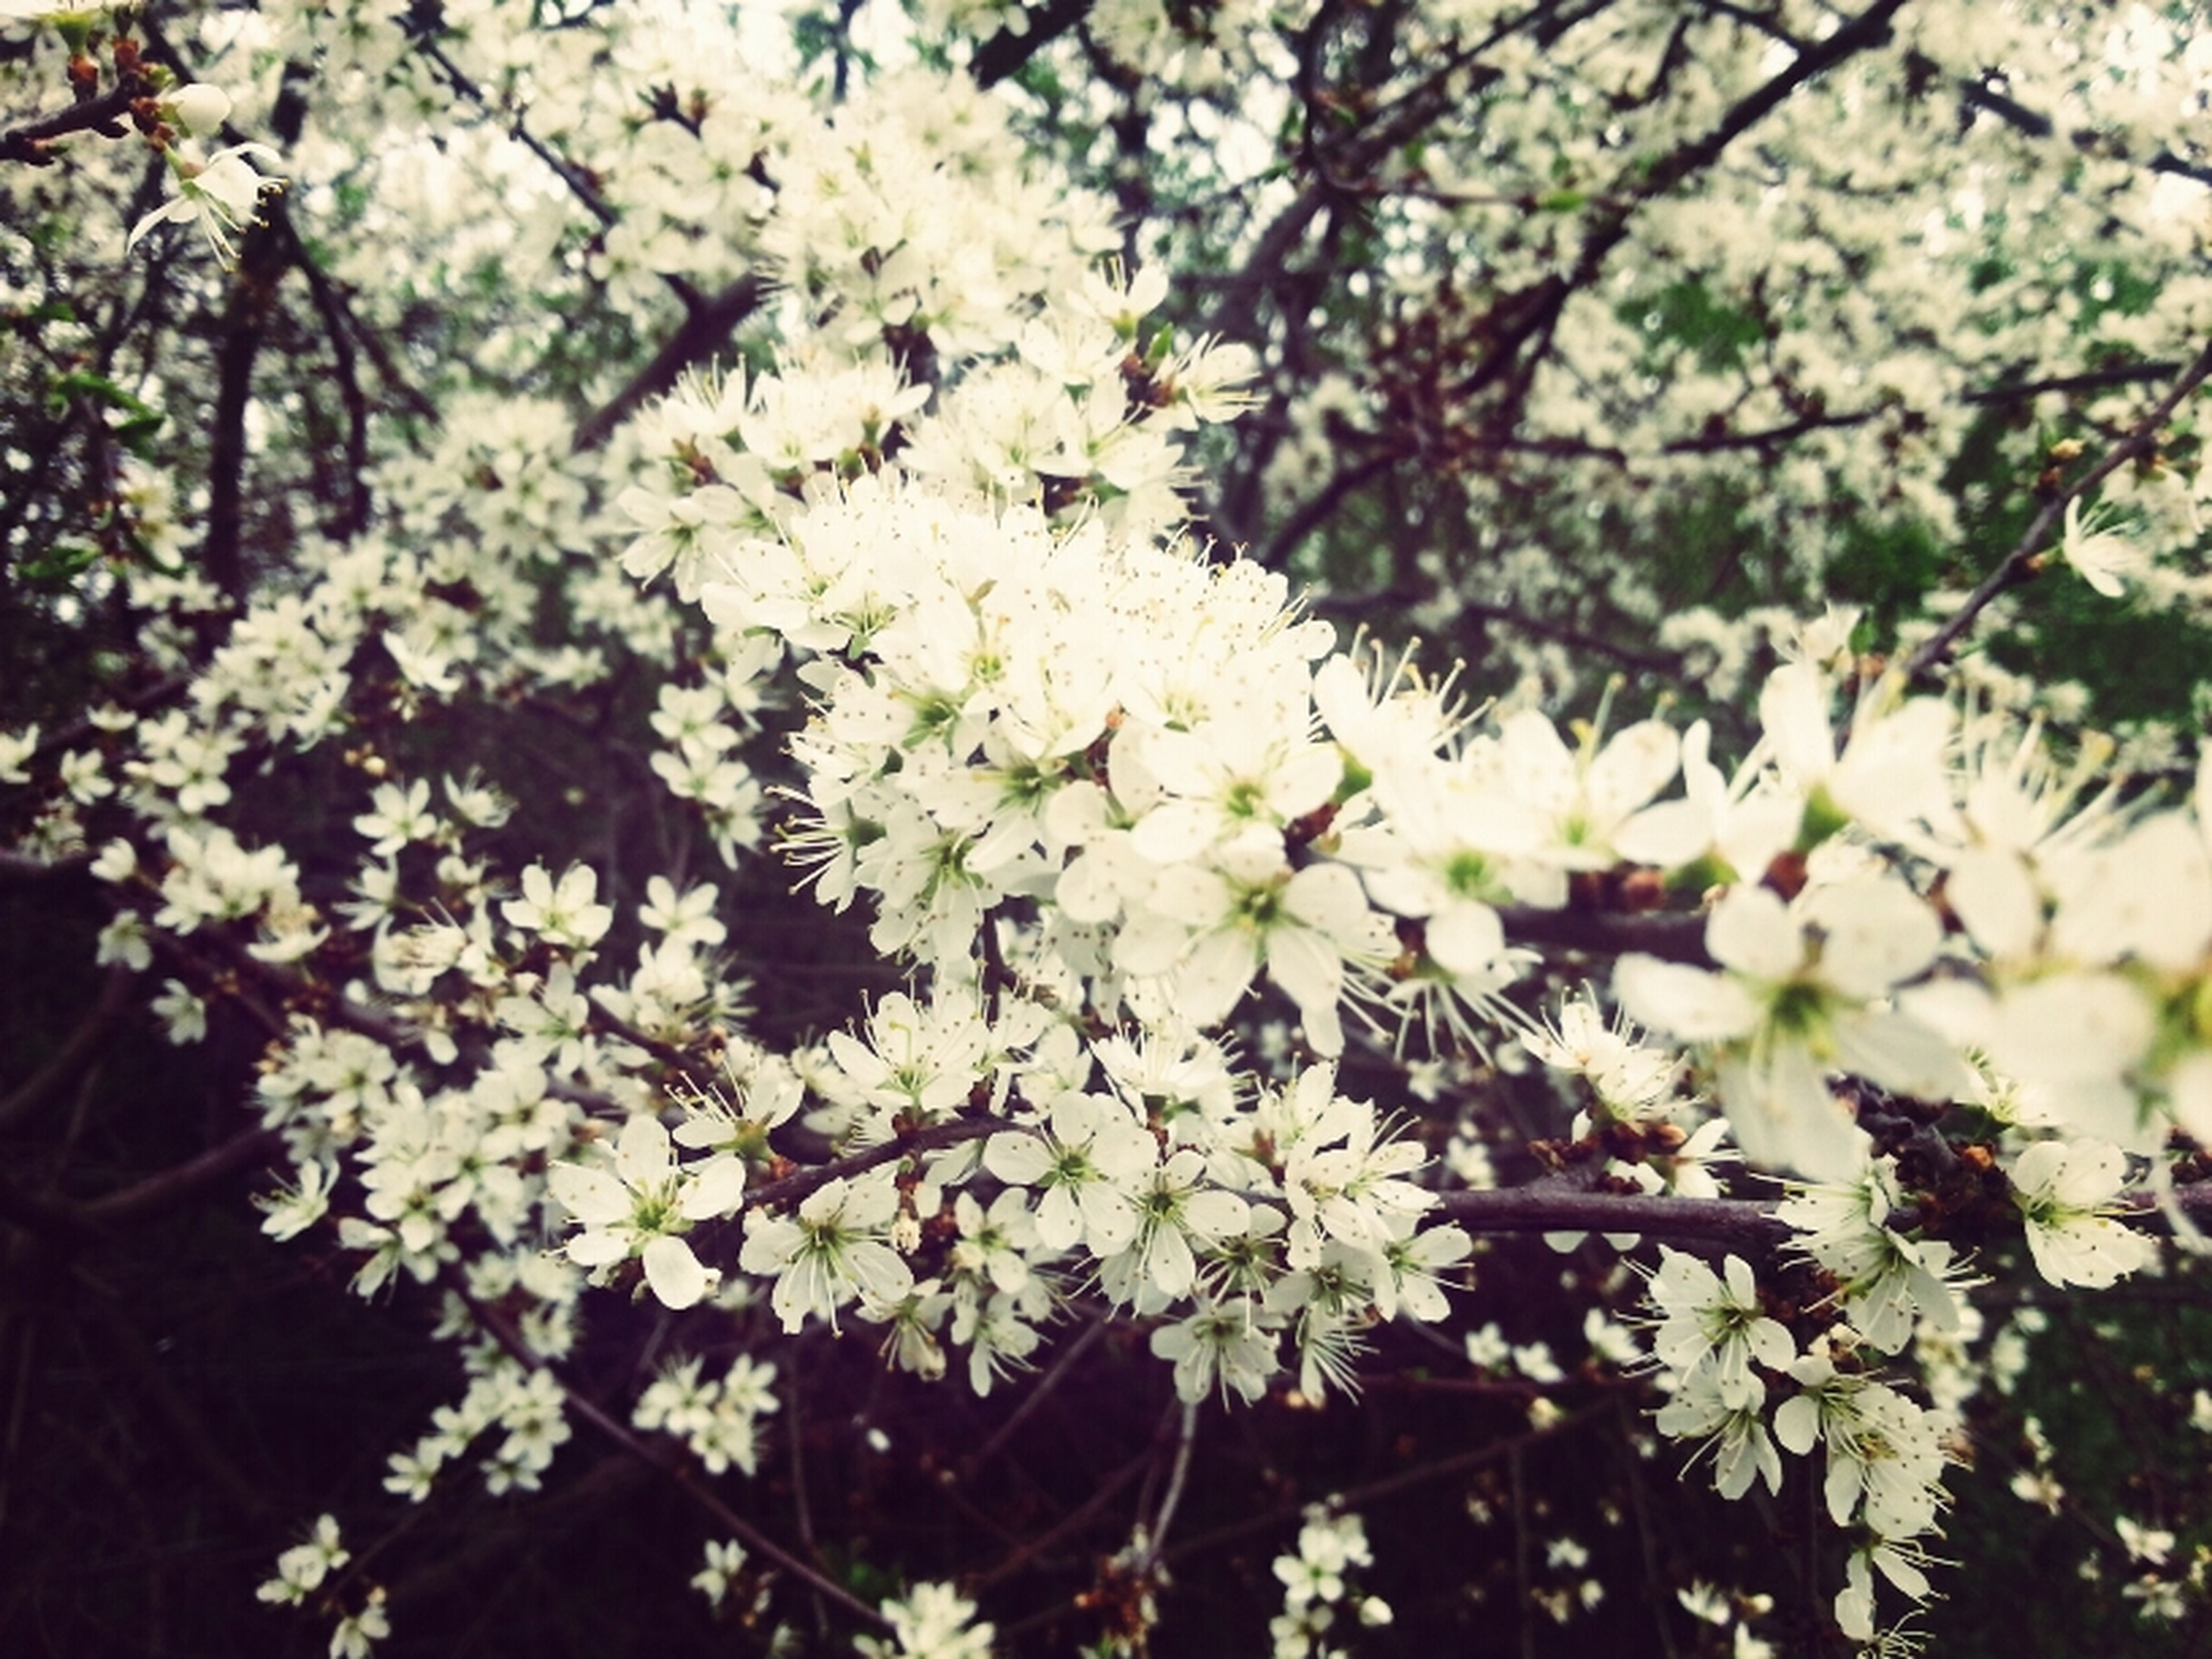 flower, growth, branch, tree, freshness, white color, beauty in nature, nature, fragility, blossom, cherry blossom, blooming, low angle view, leaf, twig, focus on foreground, cherry tree, petal, in bloom, close-up